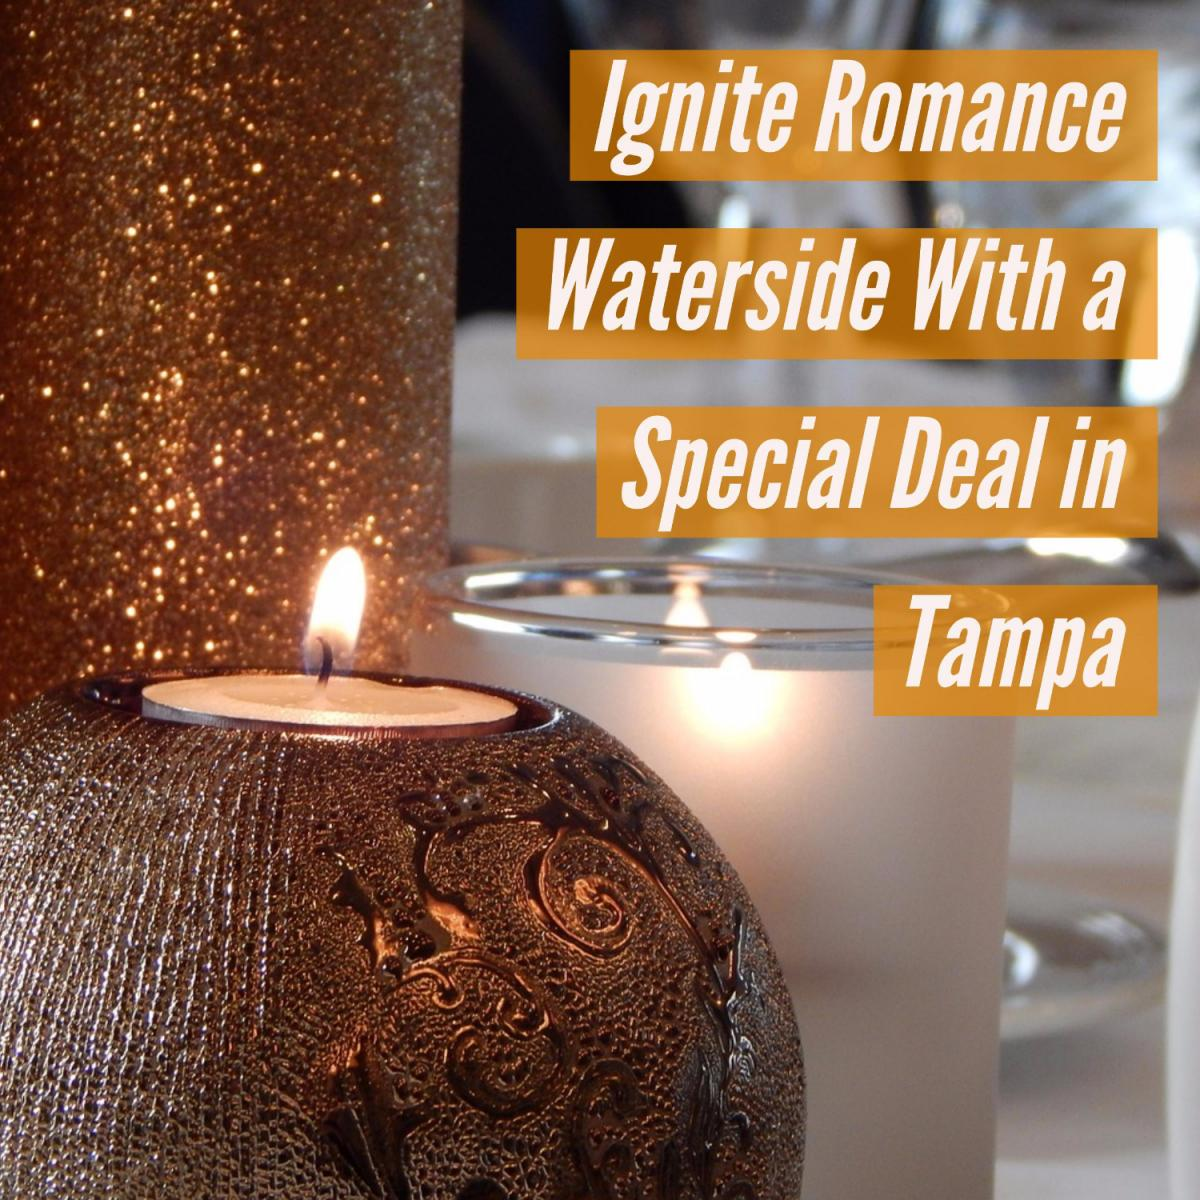 Ignite Romance Waterside With a Special Deal in Tampa